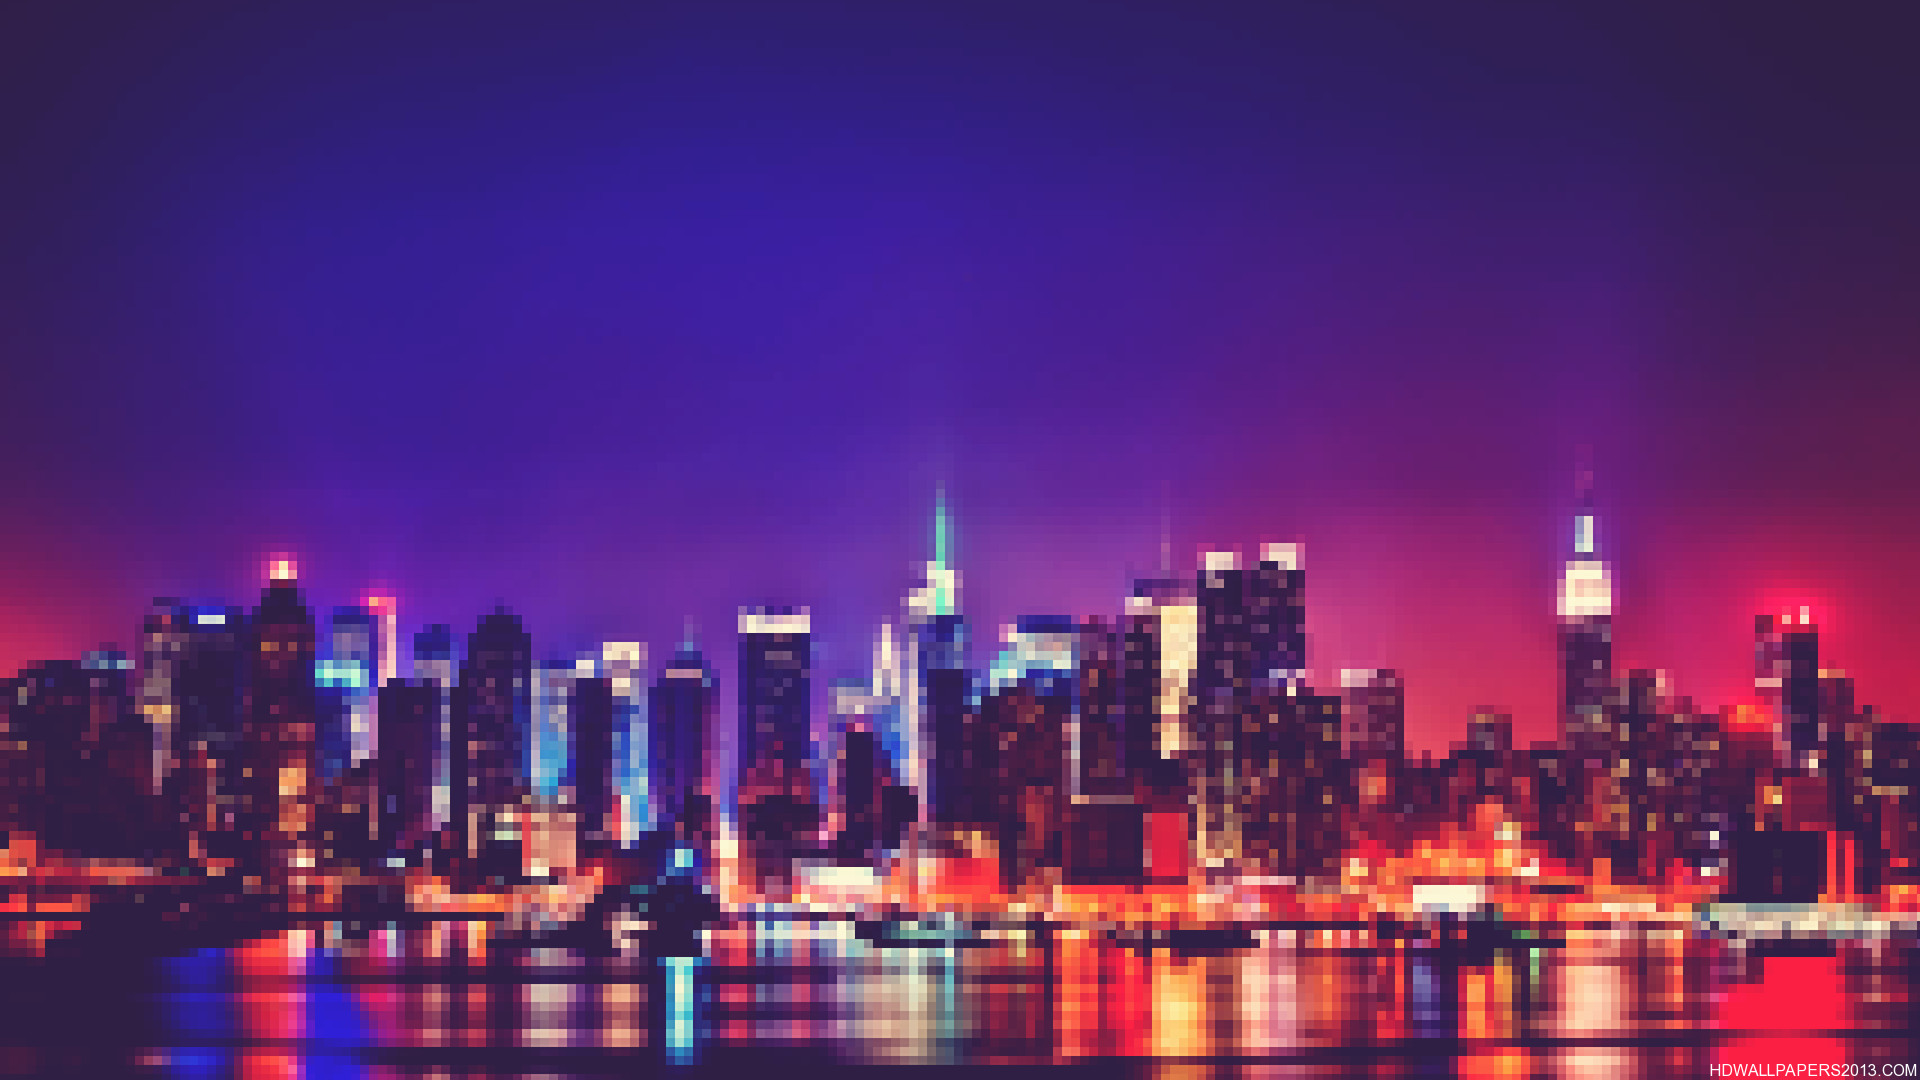 Cool Wallpaper of New York City | High Definition Wallpapers, High .